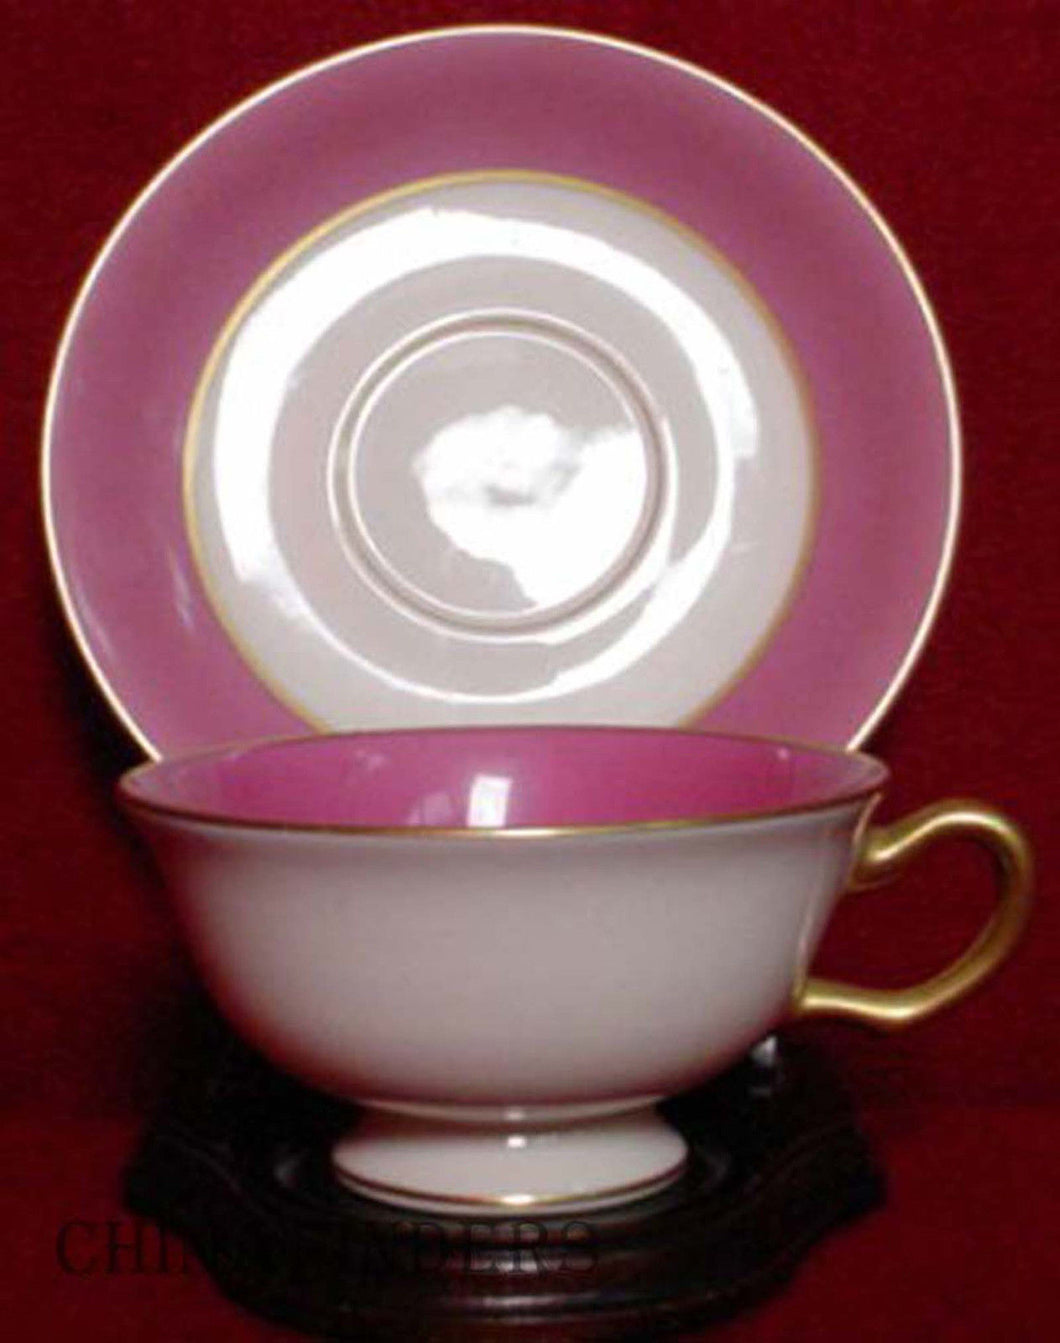 LENOX China WASHINGTON PINK S15H pattern Cup & Saucer Set - 2-1/8